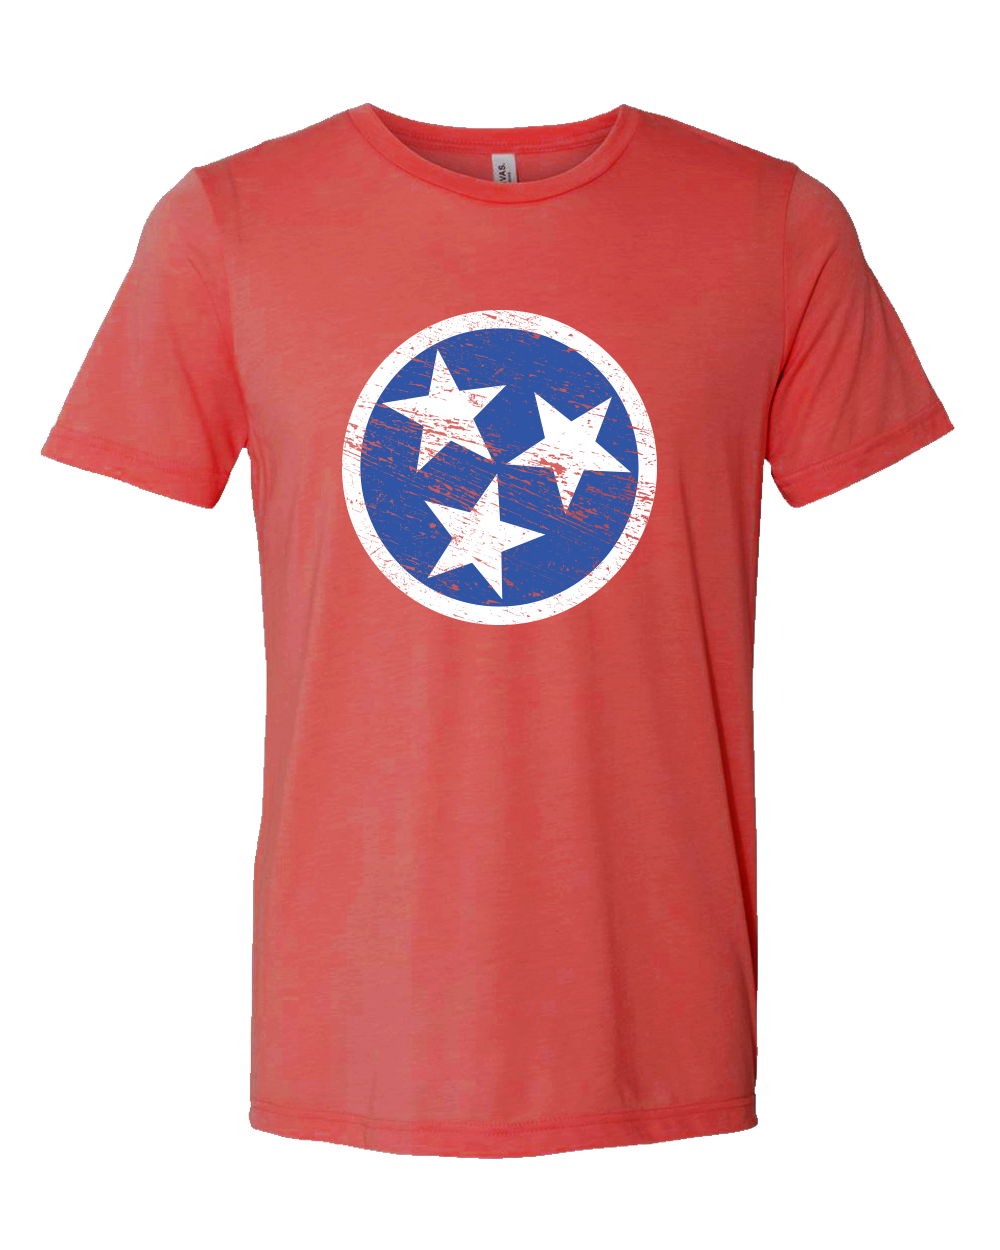 Nothing Too Fancy Knoxville Vintage Tees T Shirts Tank Tops More